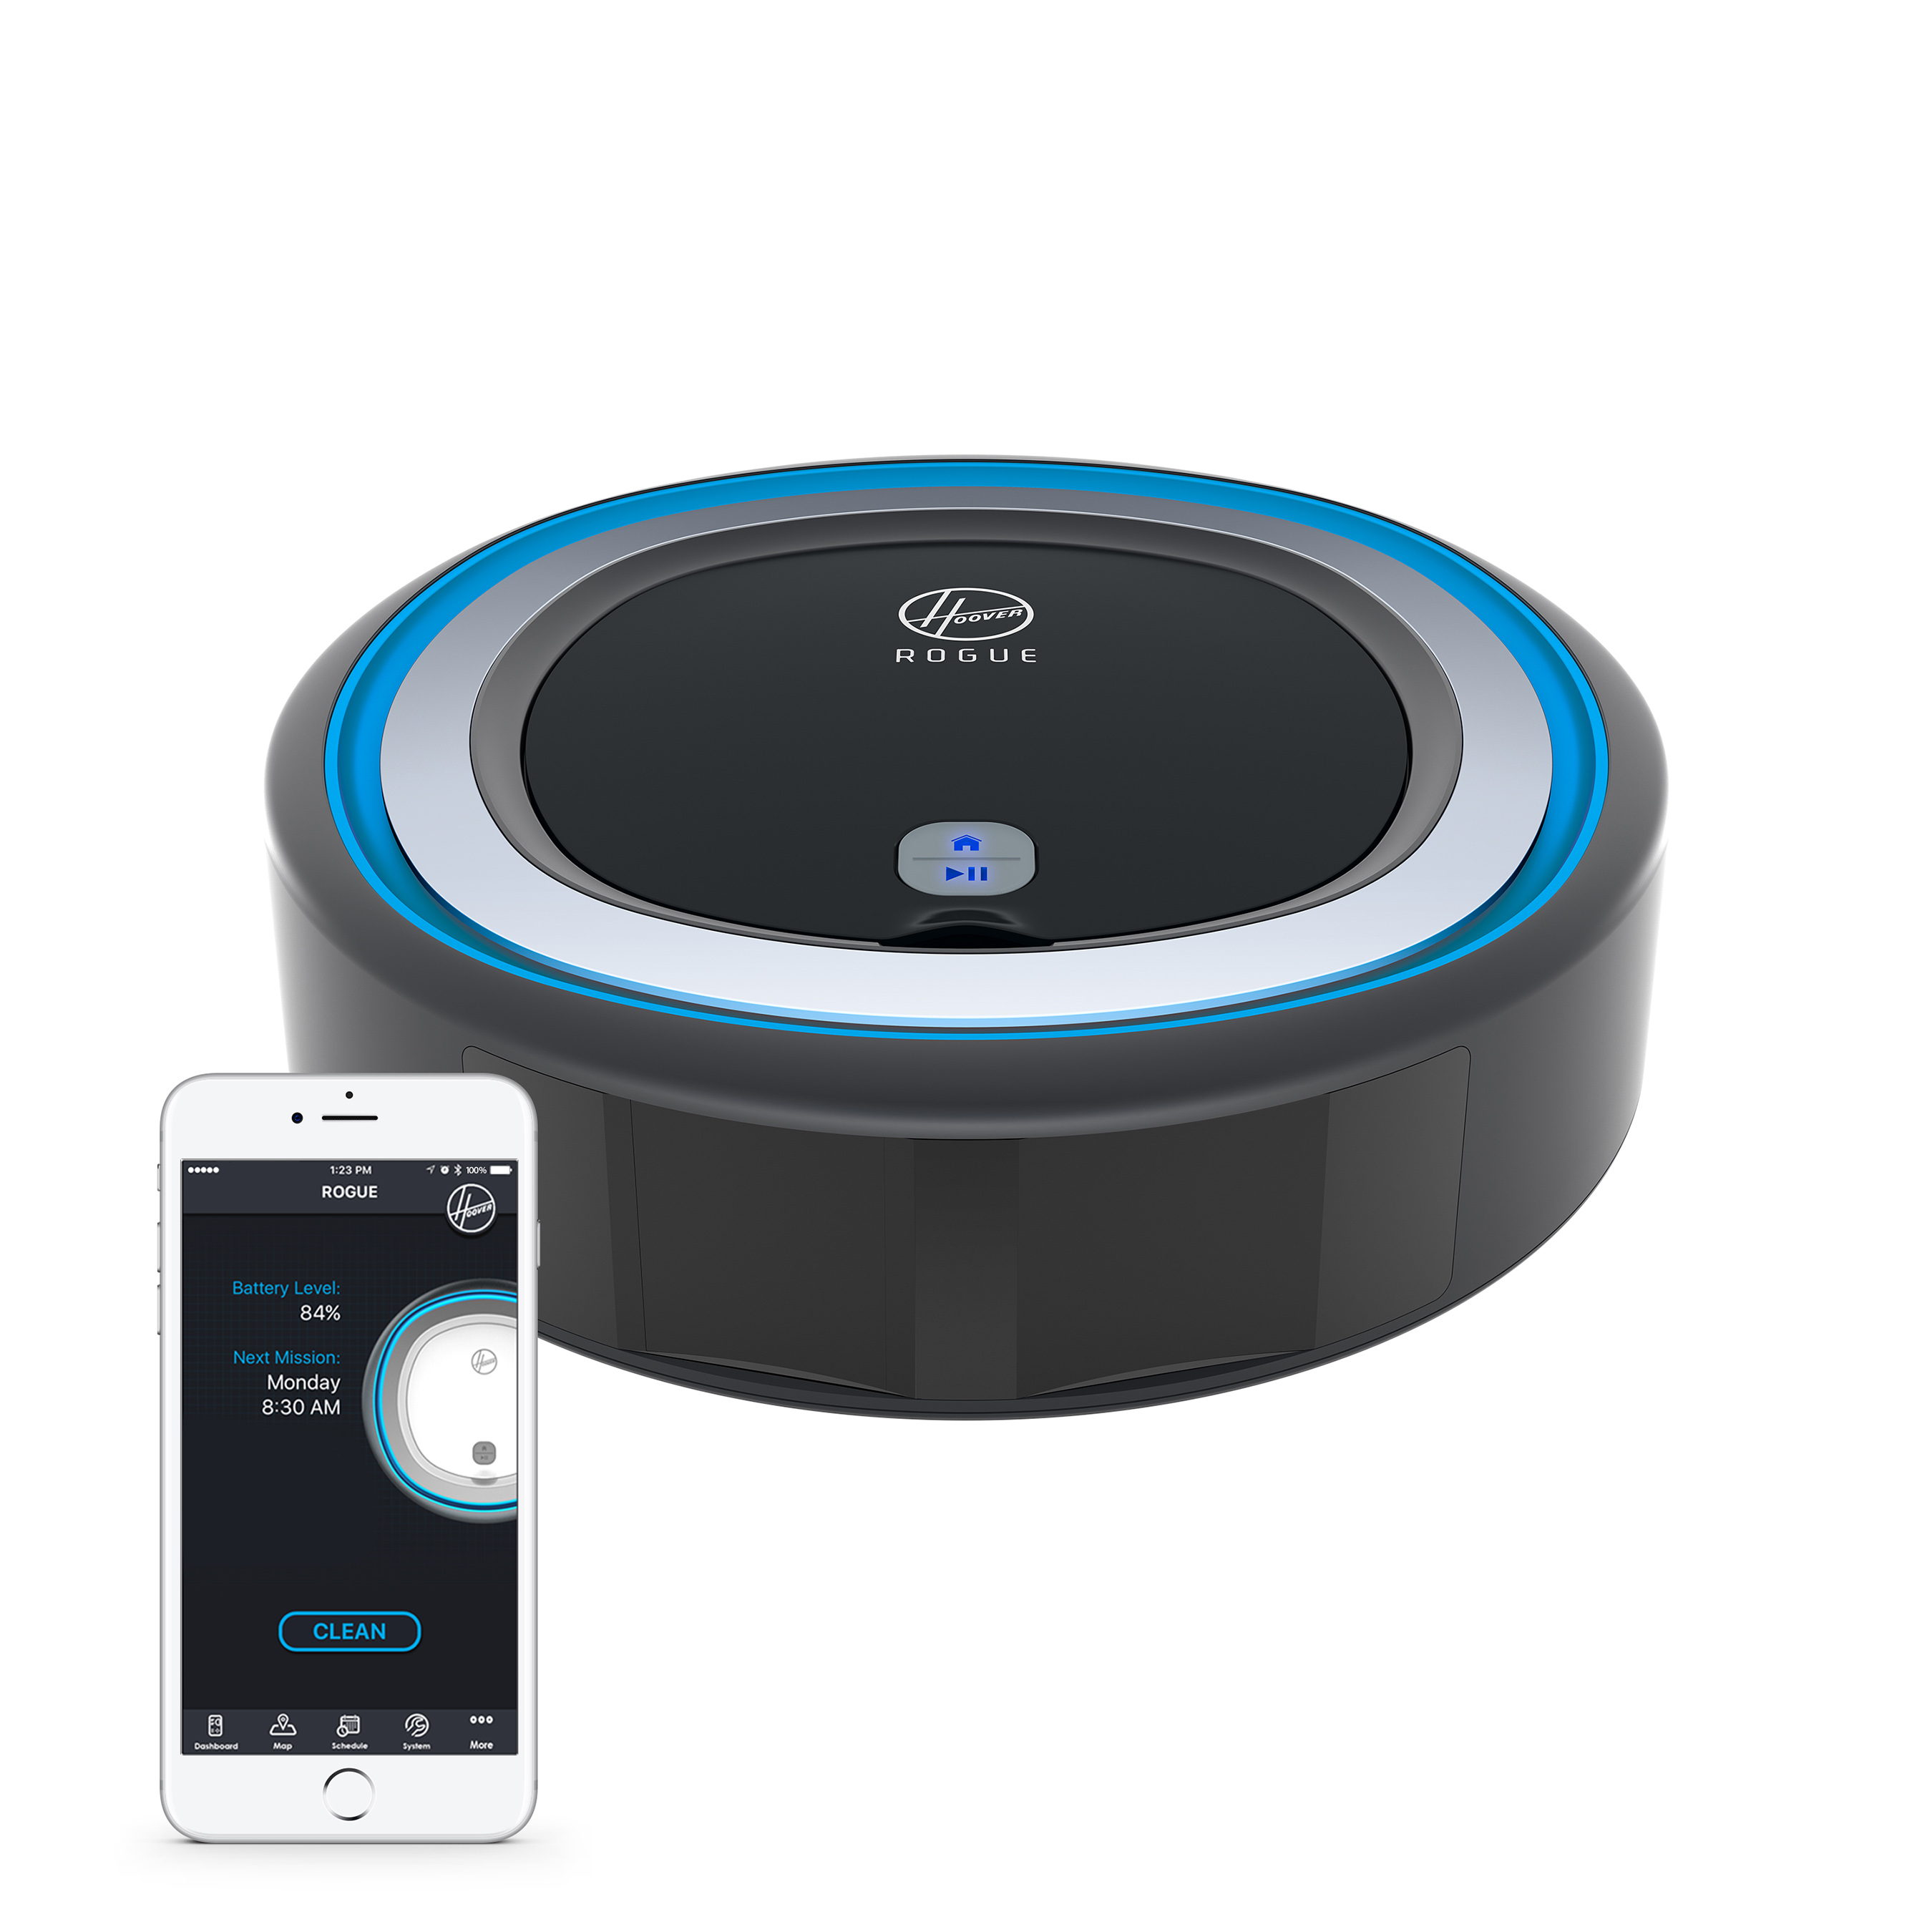 HOOVER® offers NEW premier robot vacuum at Black Friday price for extended holiday shopping window